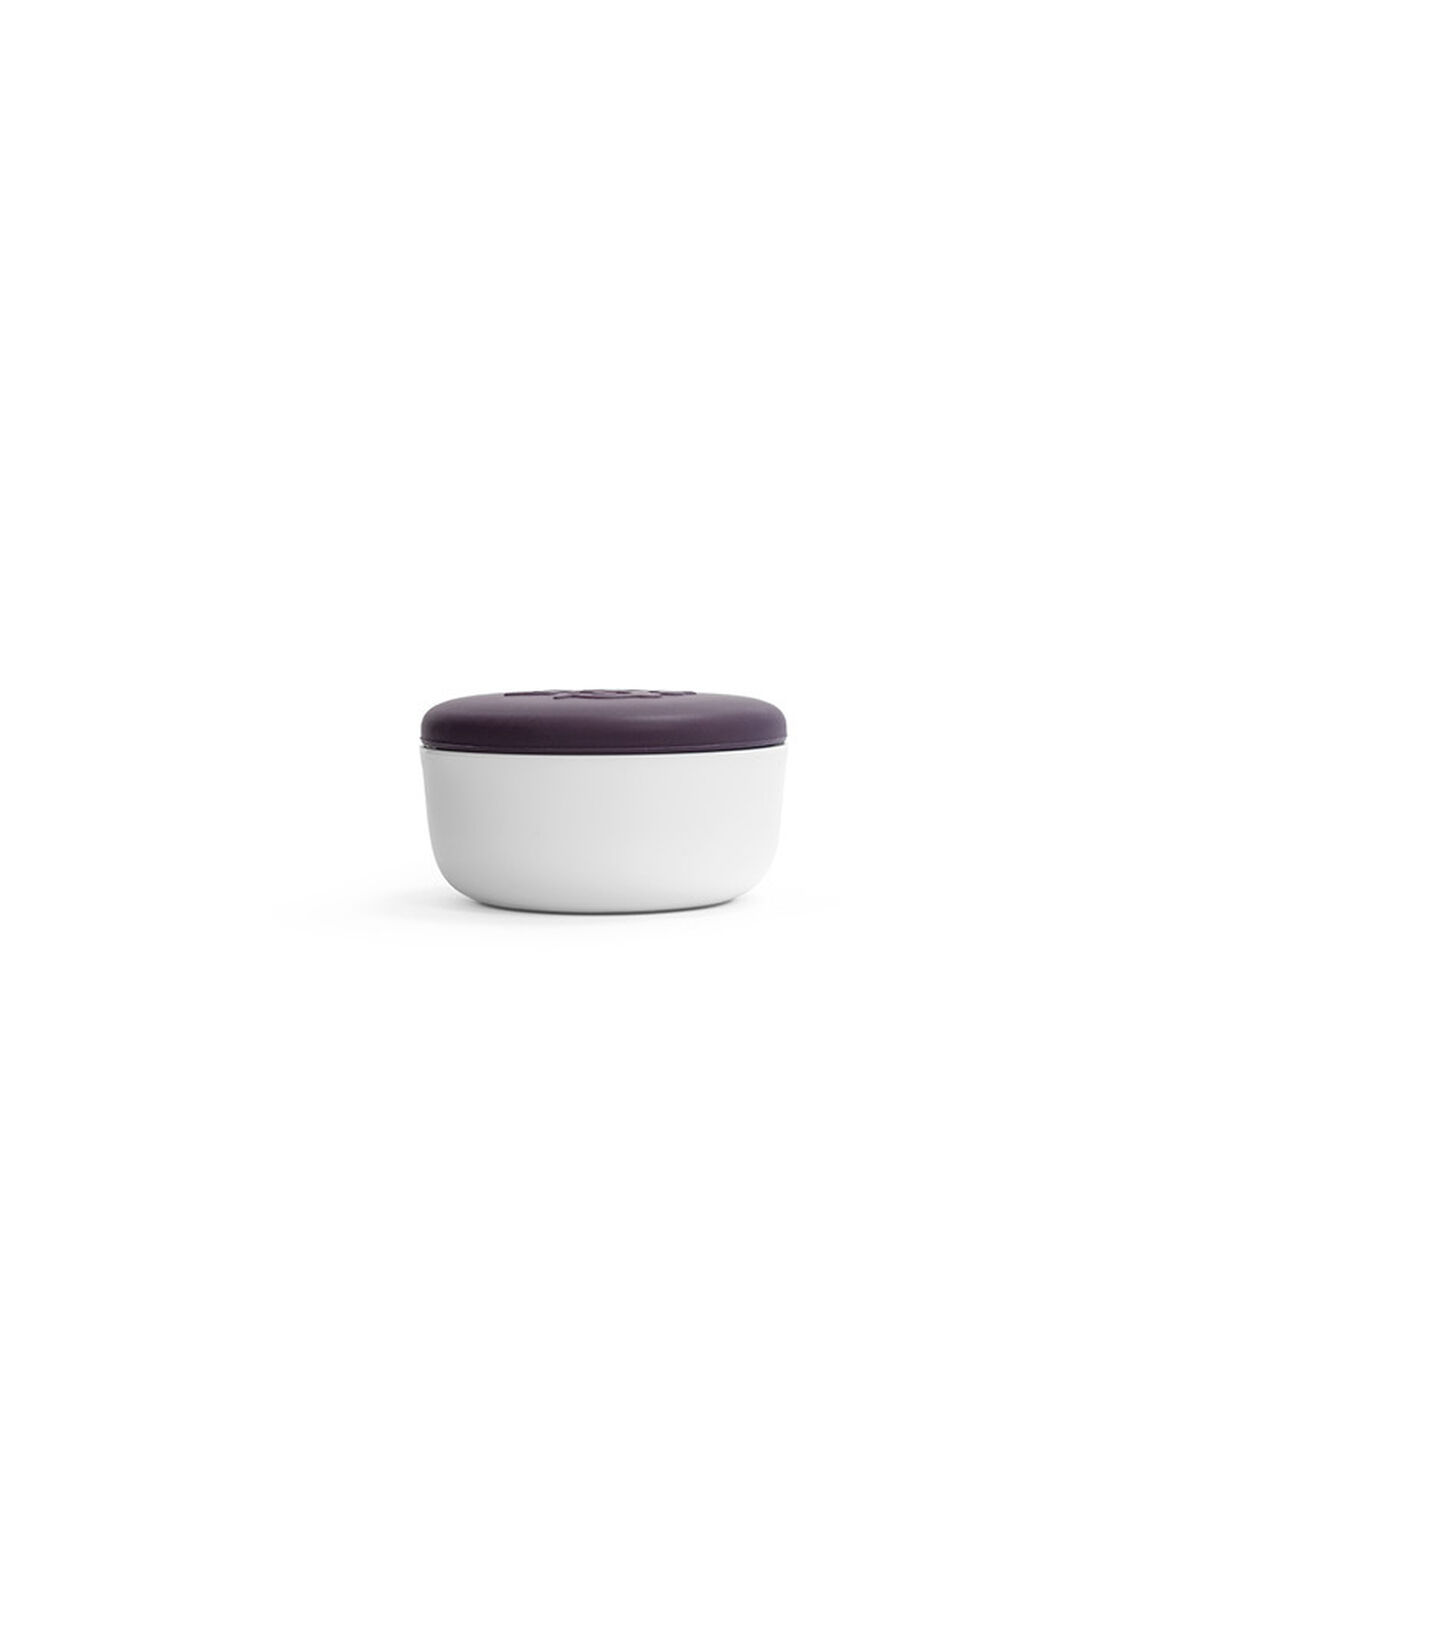 Stokke™ Munch Bowl with lid. Tableware.